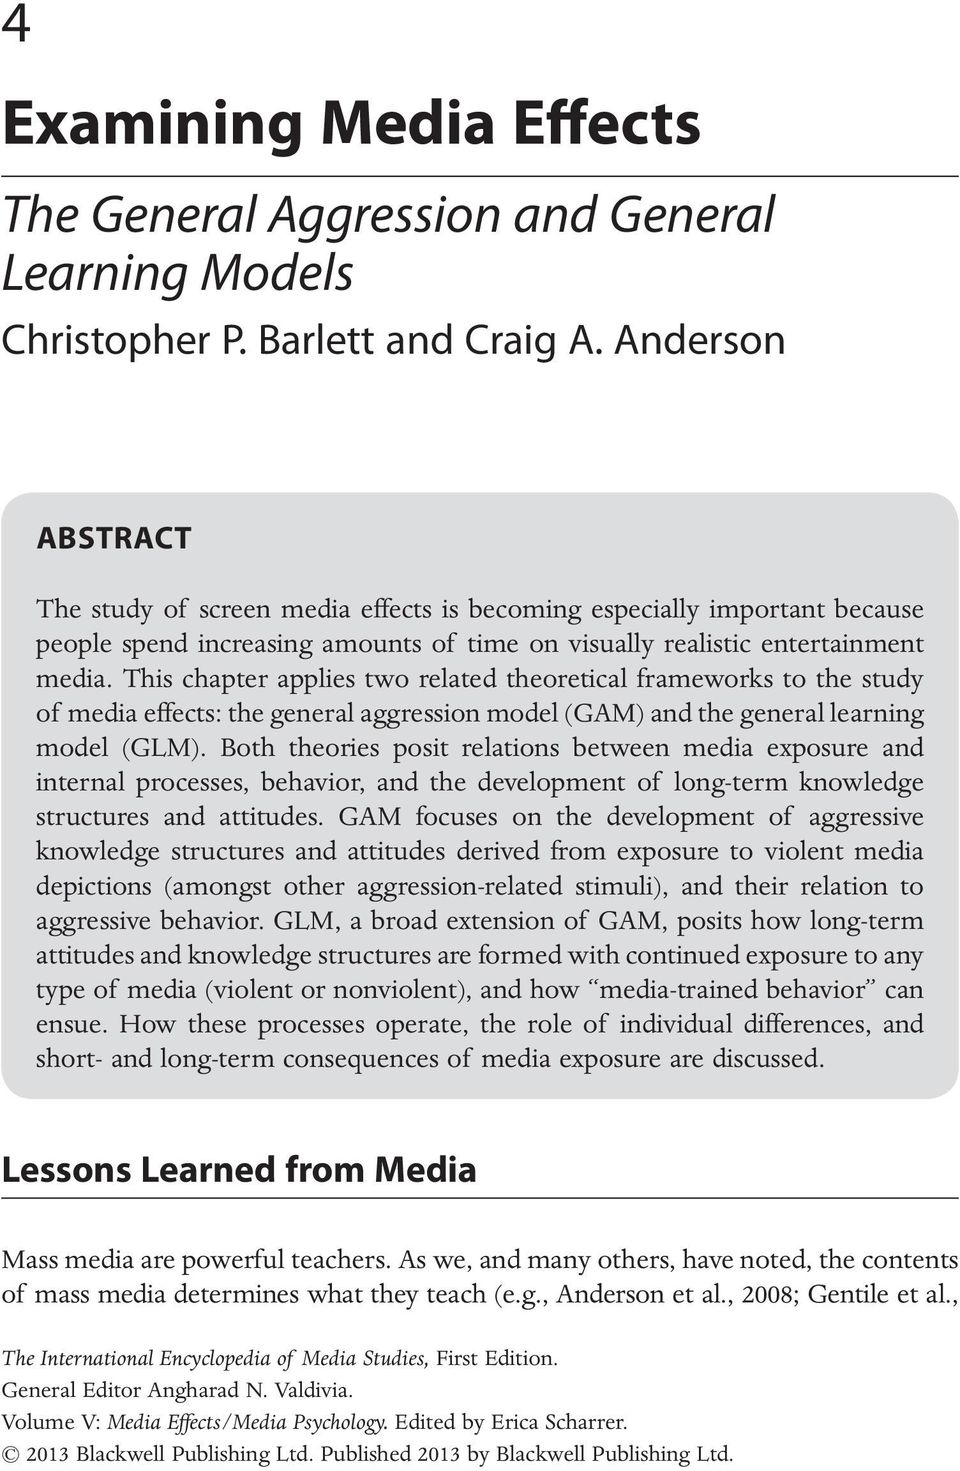 This chapter applies two related theoretical frameworks to the study of media effects: the general aggression model (GAM) and the general learning model (GLM).